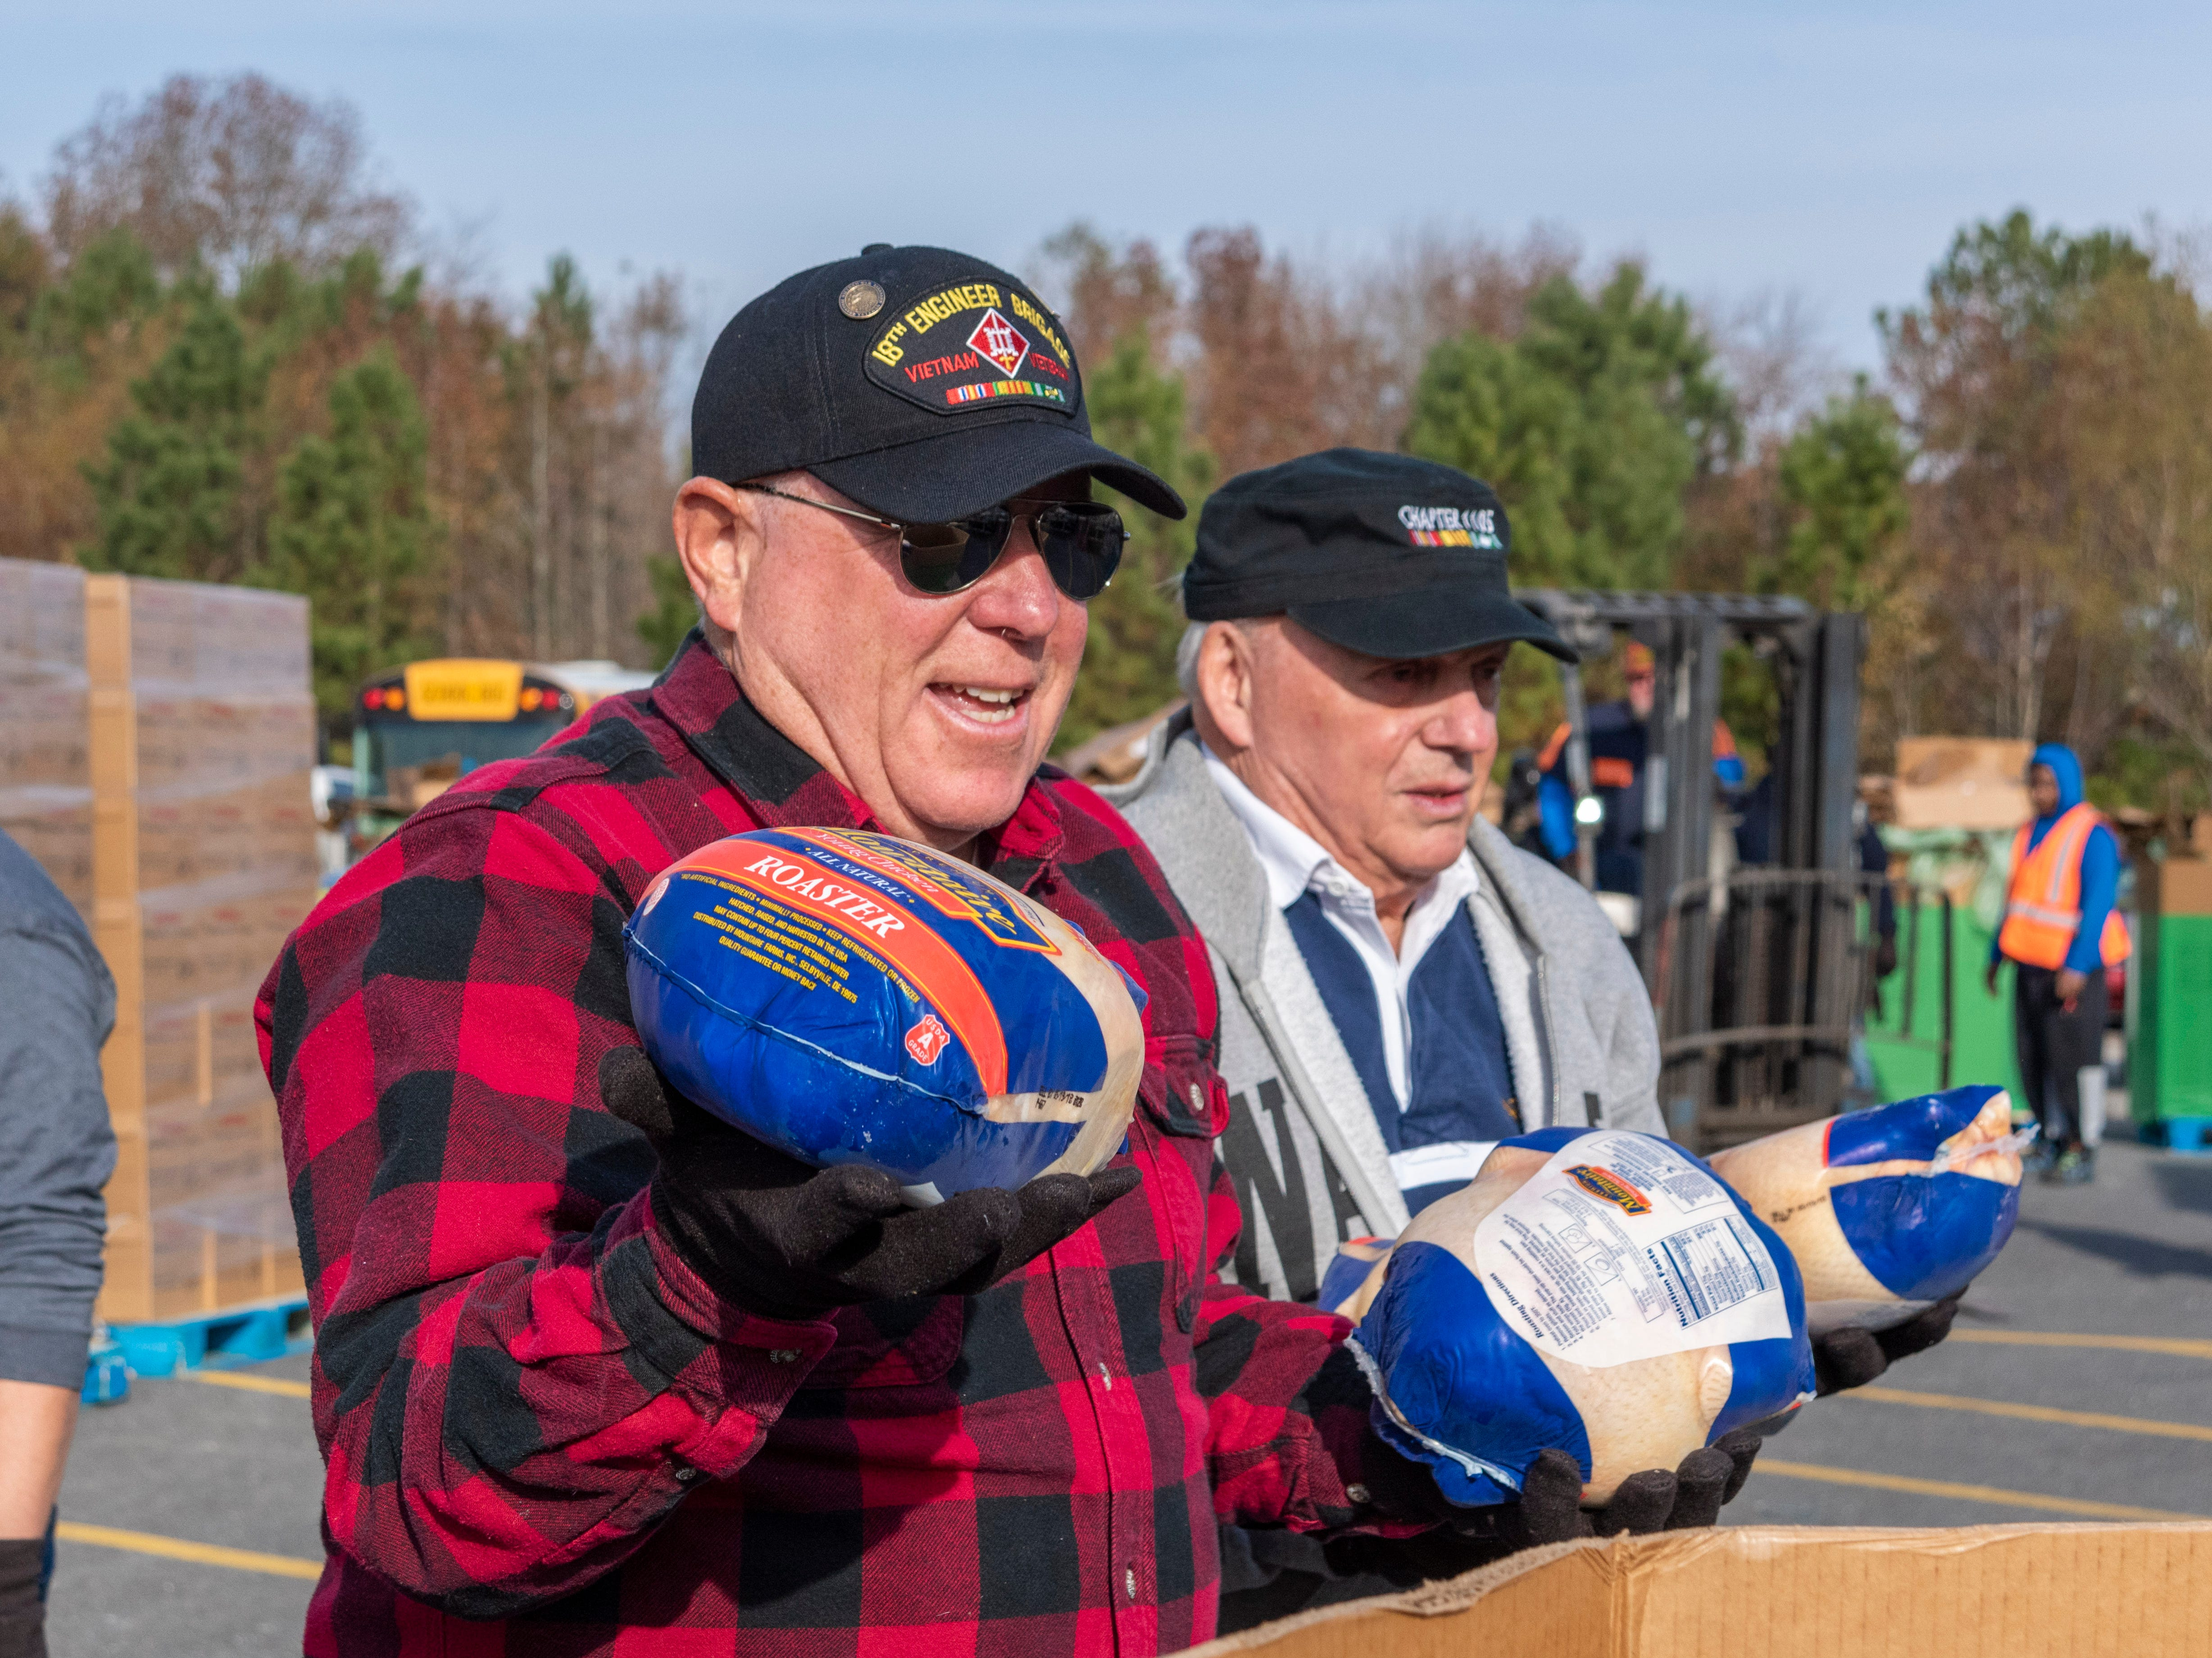 Bruce Graber, Vietnam Veterans of America, Chapter #1105, Millsboro helps pack chickens as part Thanksgiving for Thousands on Monday, Nov. 19, 2018.